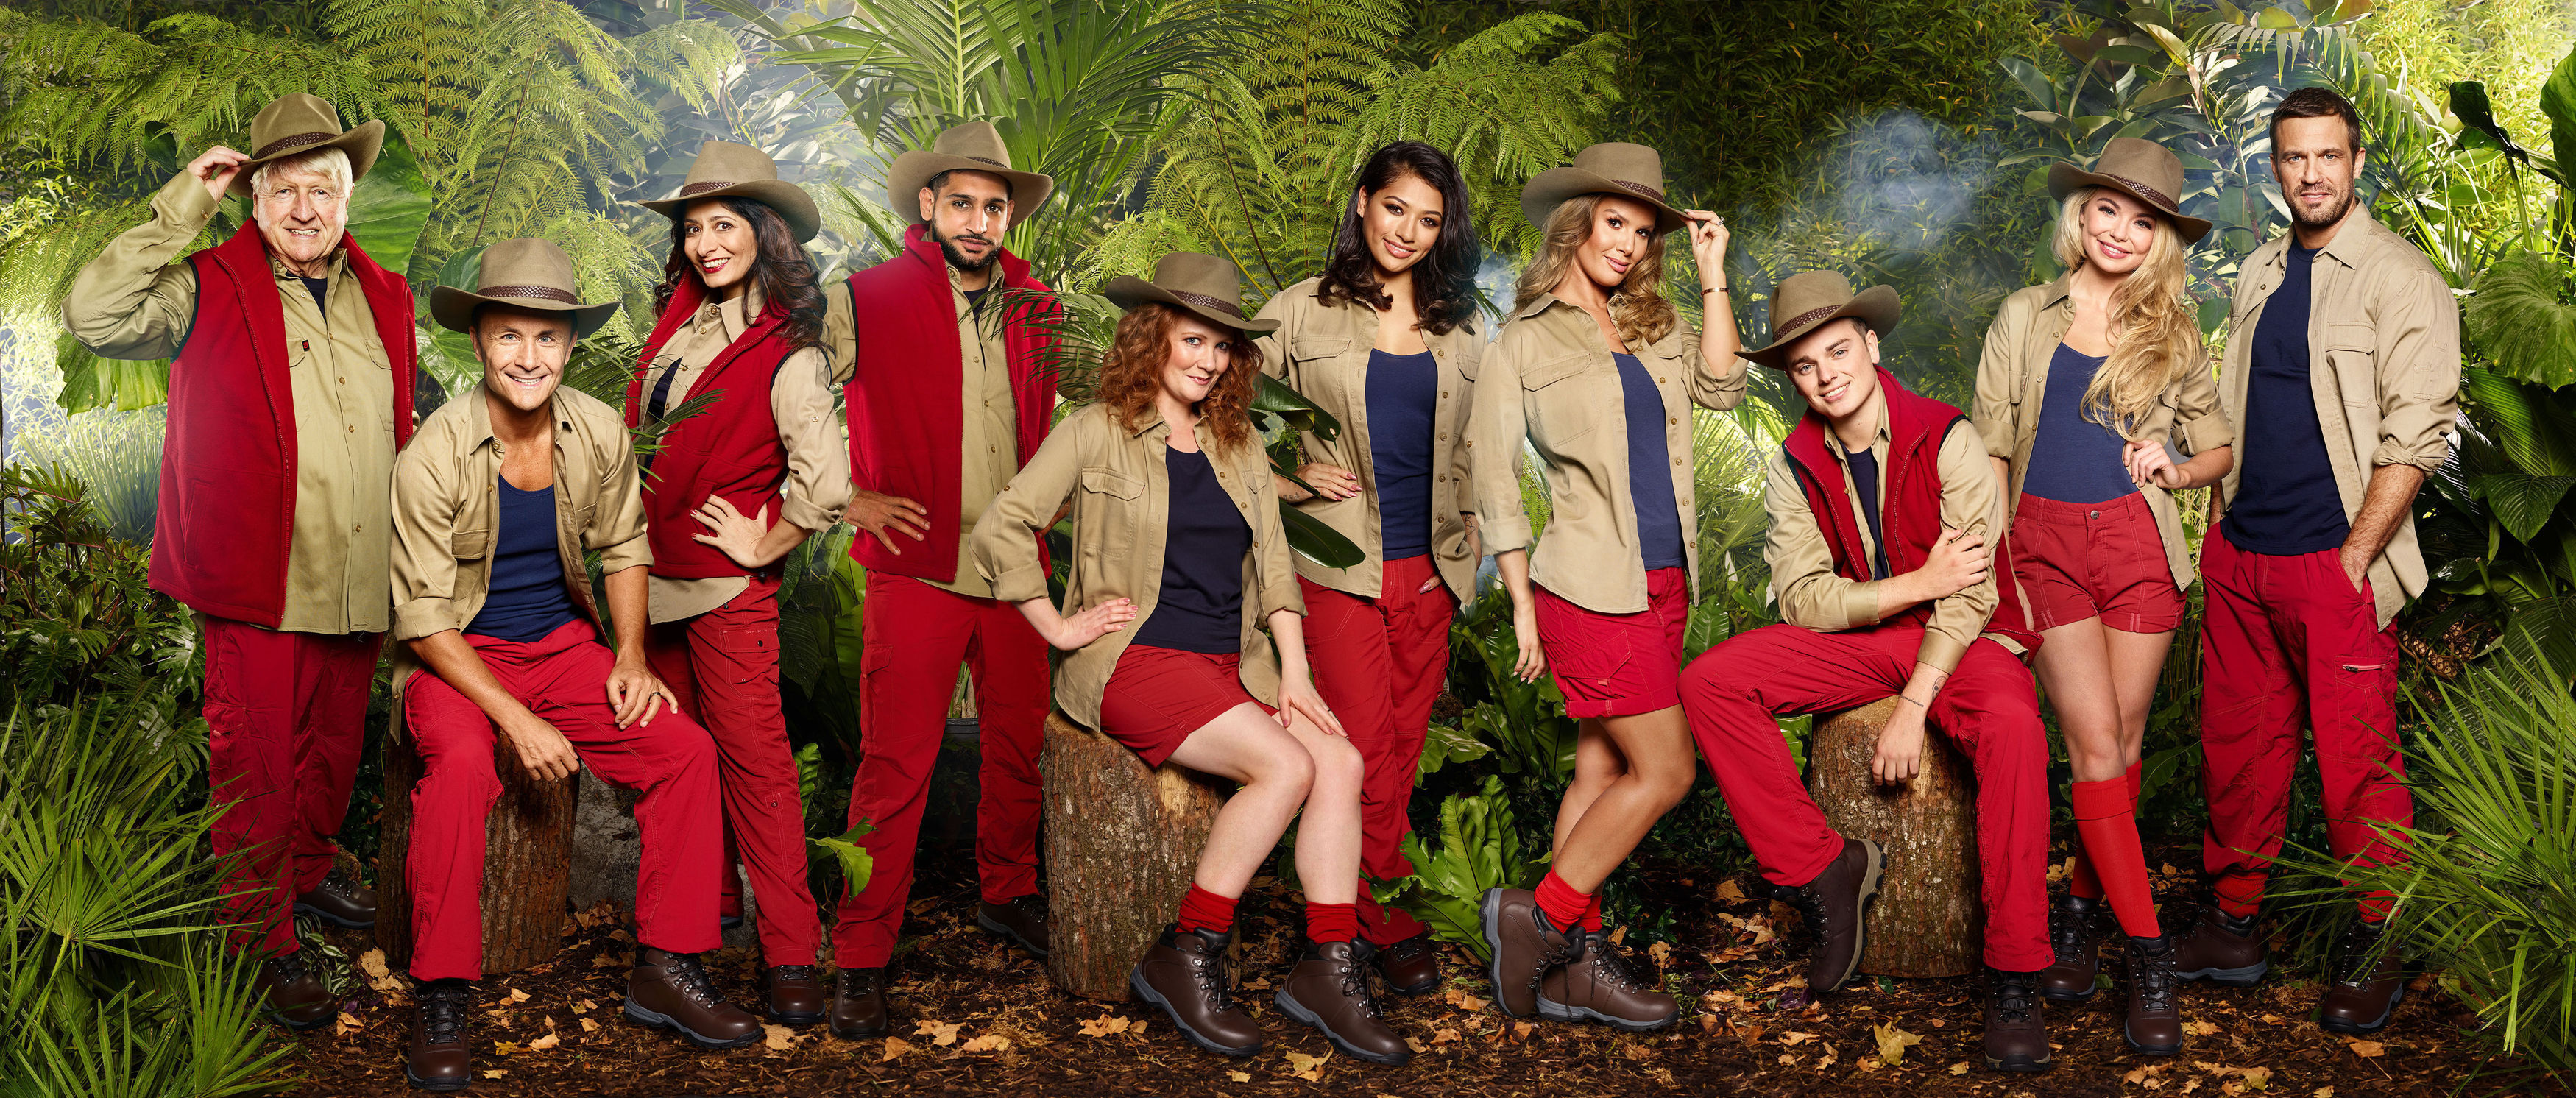 (left-right) Stanley Johnson, Dennis Wise, Shappi Khorsandi, Amir Khan, Jennie McAlpine, Vanessa White, Rebekah Vardy, Jack Maynard, Georgia Toffolo and Jamie Lomas who have been revealed as the contestants for I'm A Celebrity ... Get Me Out Of Here! 2017.